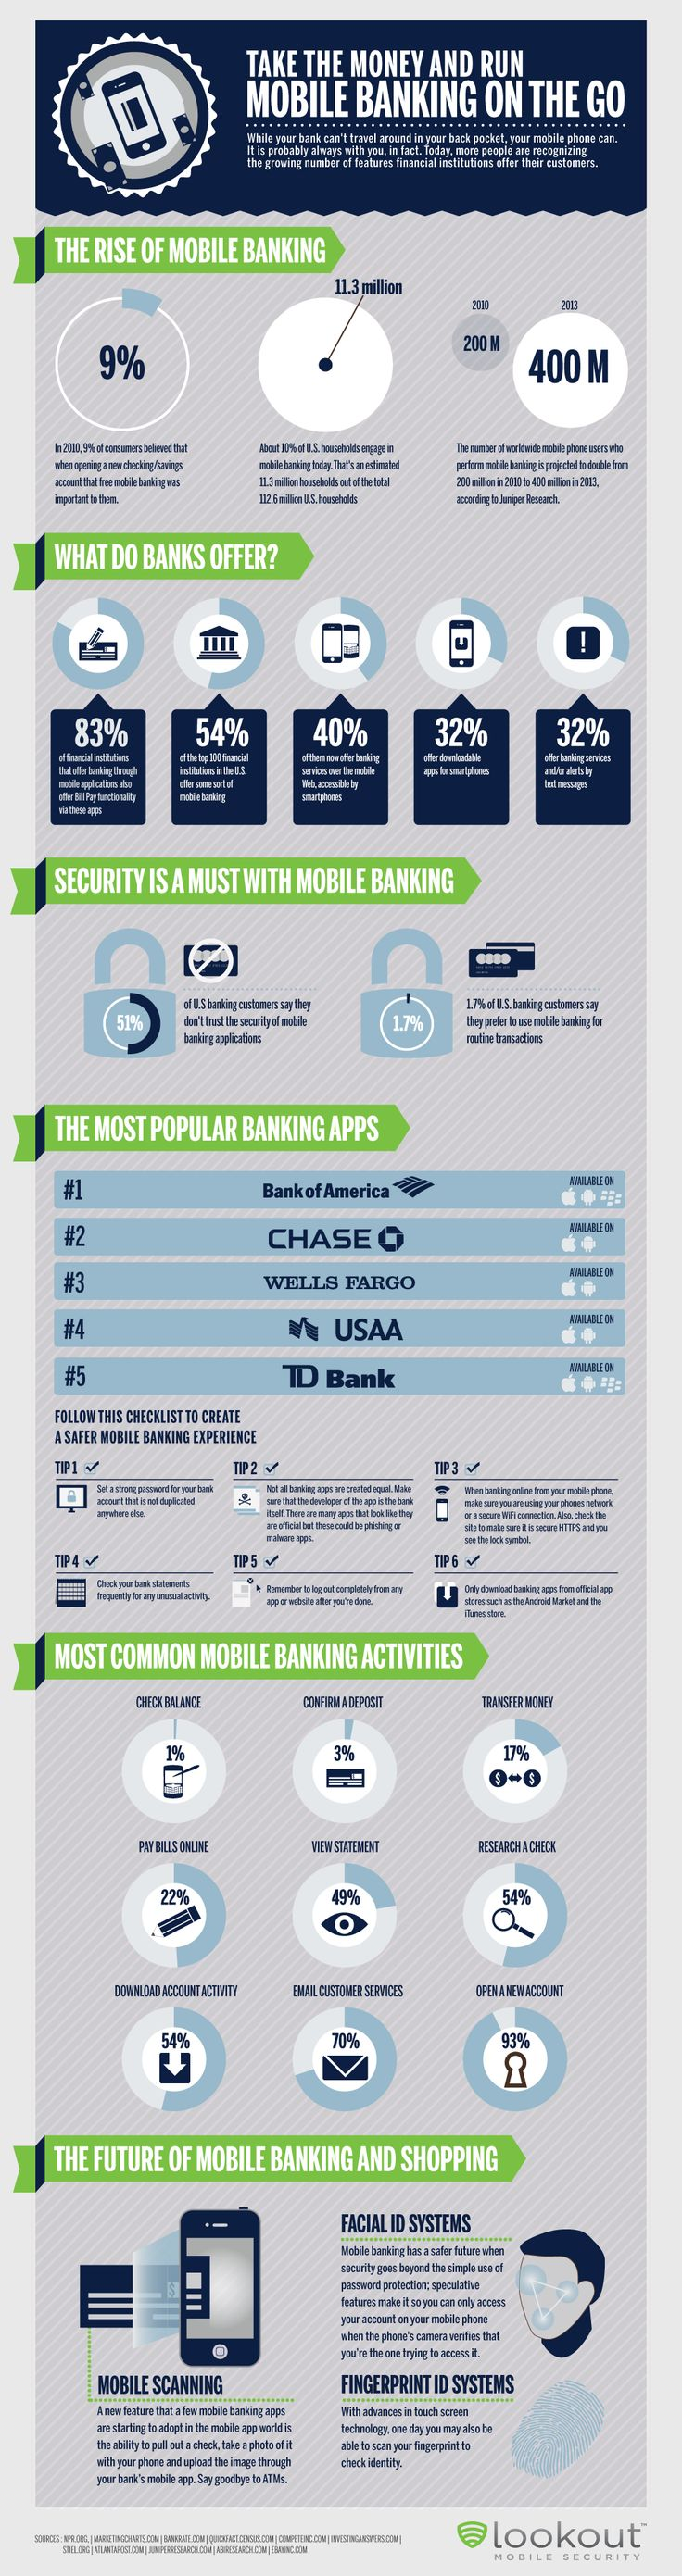 mobile-banking-business-infographic.png (1000×3781)